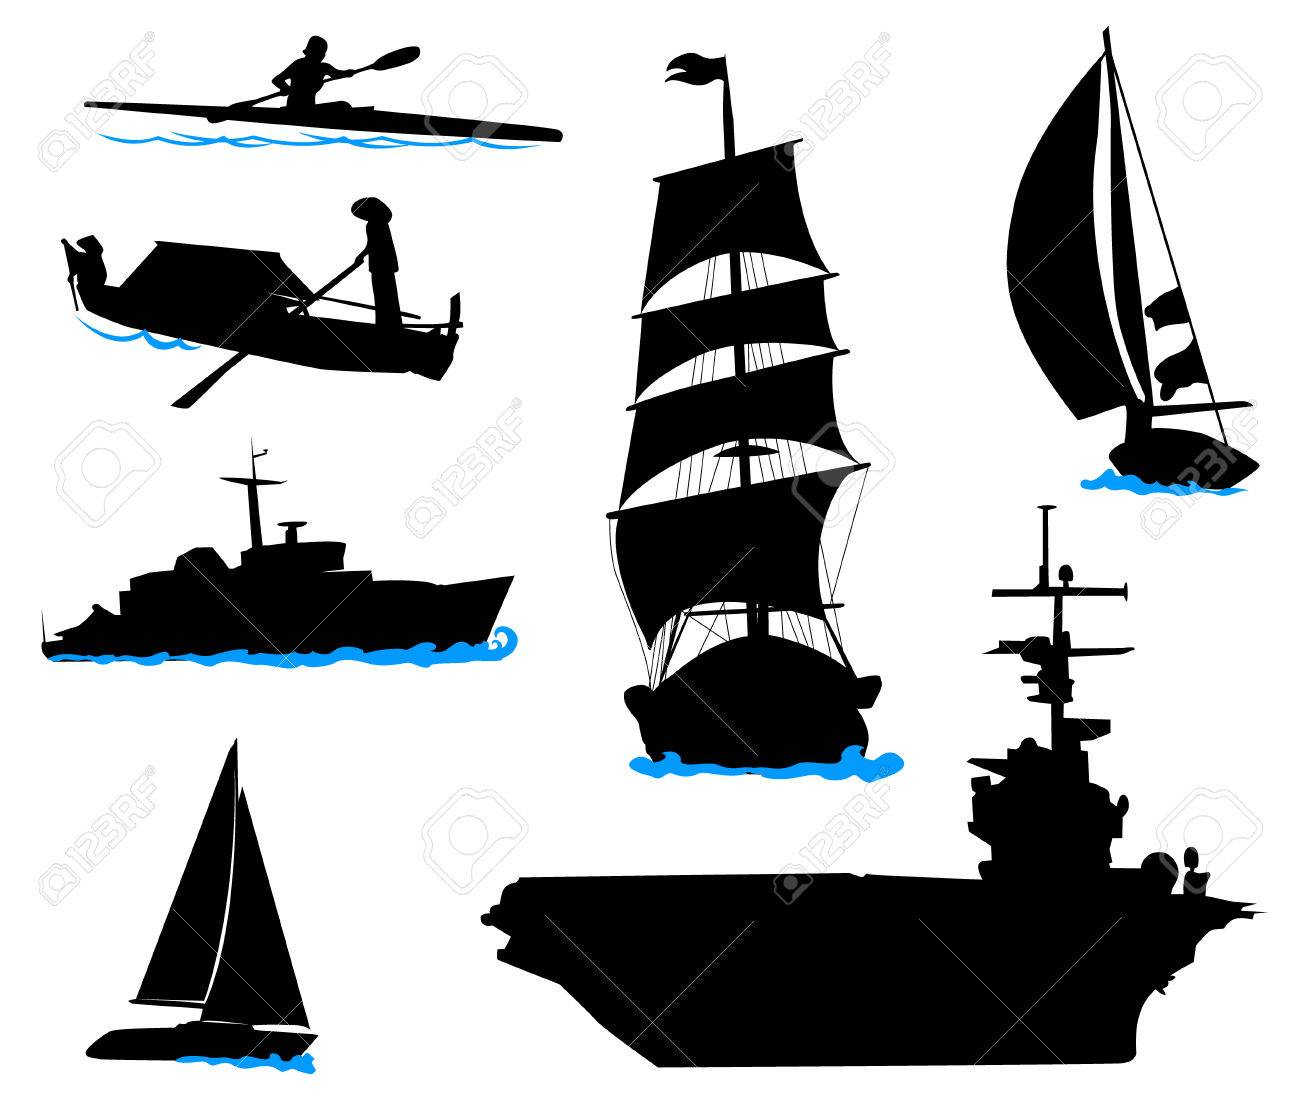 silhouettes of offshore ships yacht fishing boat the warship rh 123rf com cruise ship silhouette vector ship silhouette vector free download